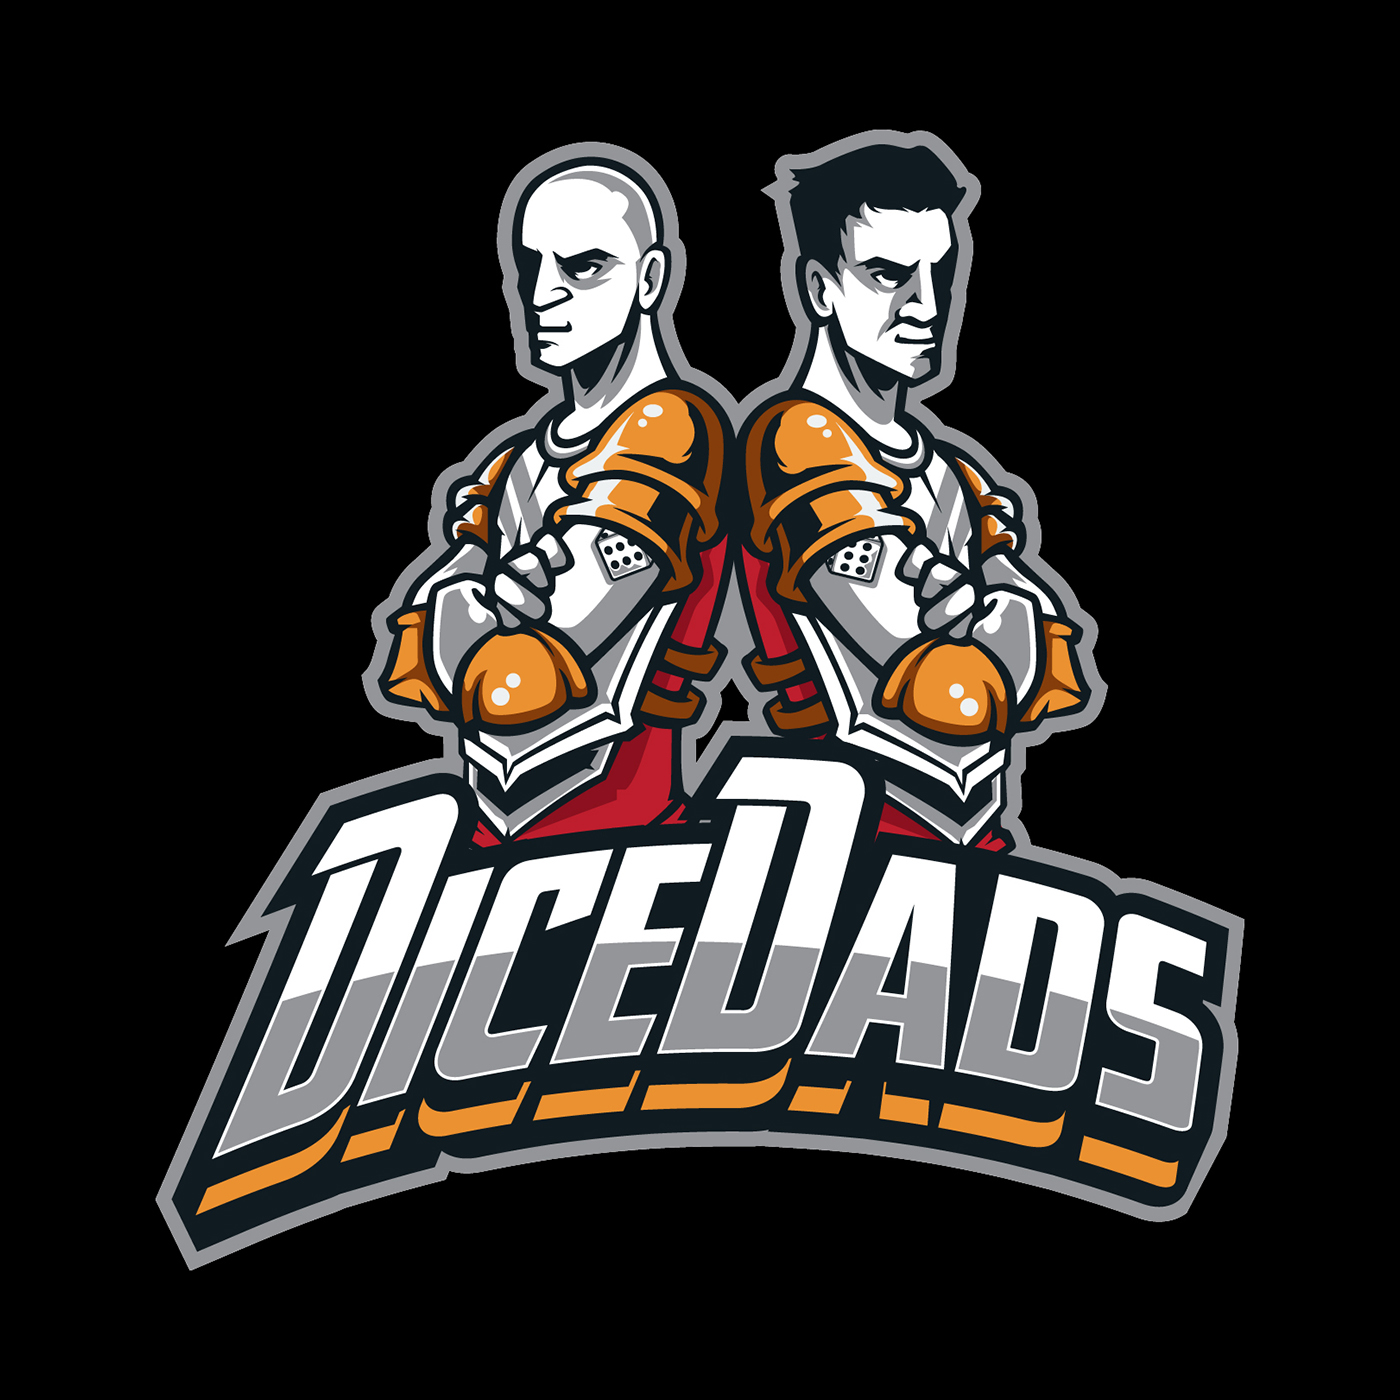 DiceDads: A Board Game Podcast show art